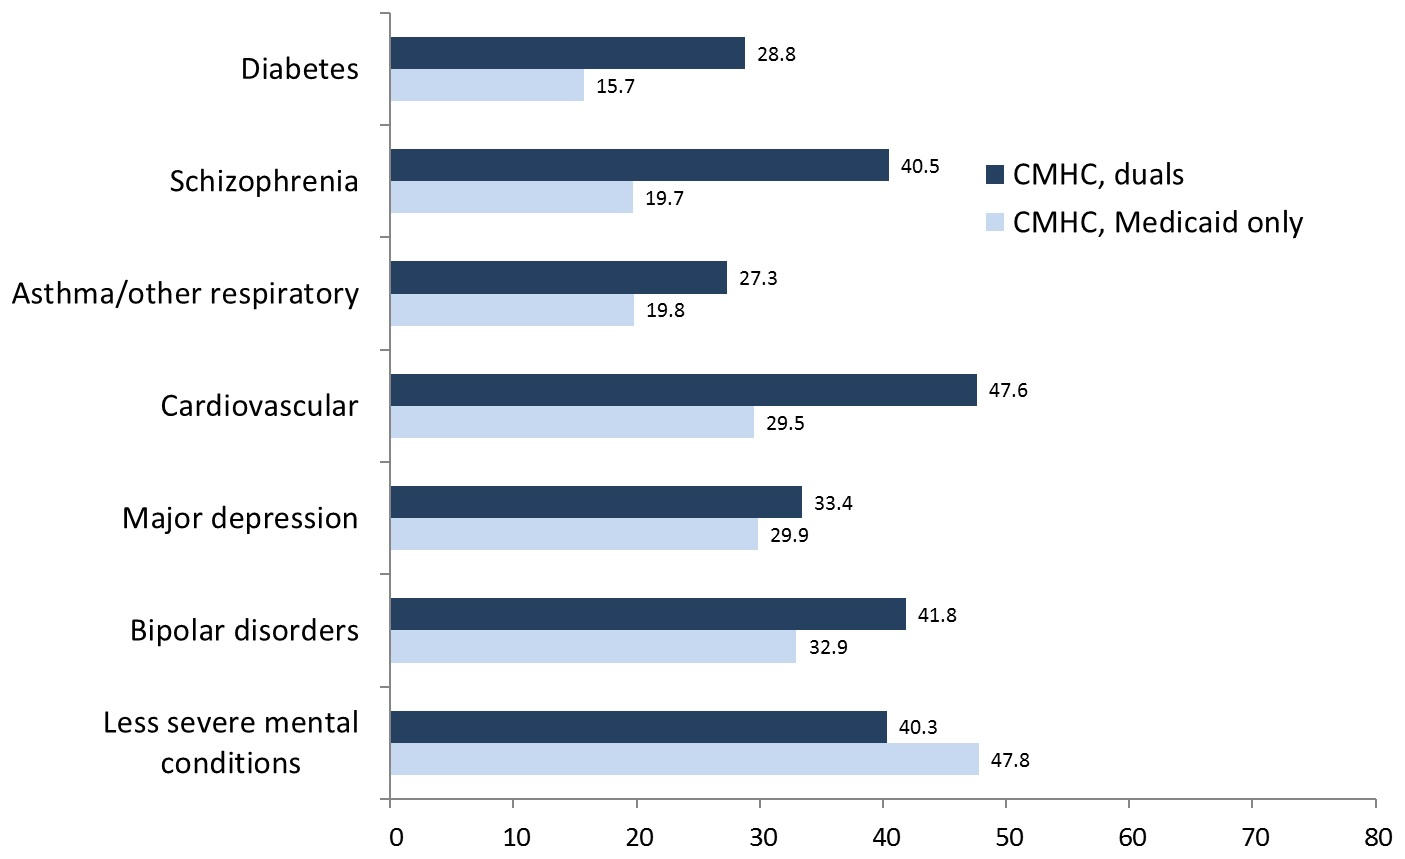 FIGURE 2, Bar Chart: Diabetes--CMHC, duals (28.8); CMHC, Medicaid only (15.7). Schizophrenia--CMHC, duals (40.5); CMHC, Medicaid only (19.7). Asthma/Other Respiratory--CMHC, duals (27.3); CMHC, Medicaid only (19.8). Cardiovascular--CMHC, duals (47.6); CMHC, Medicaid only (29.5). Major Depression--CMHC, duals (33.4); CMHC, Medicaid only (29.9). Bipolar Disorders--CMHC, duals (41.8); CMHC, Medicaid only (32.9). Less Severe Mental Conditions--CMHC, duals (40.3); CMHC, Medicaid only (47.8).